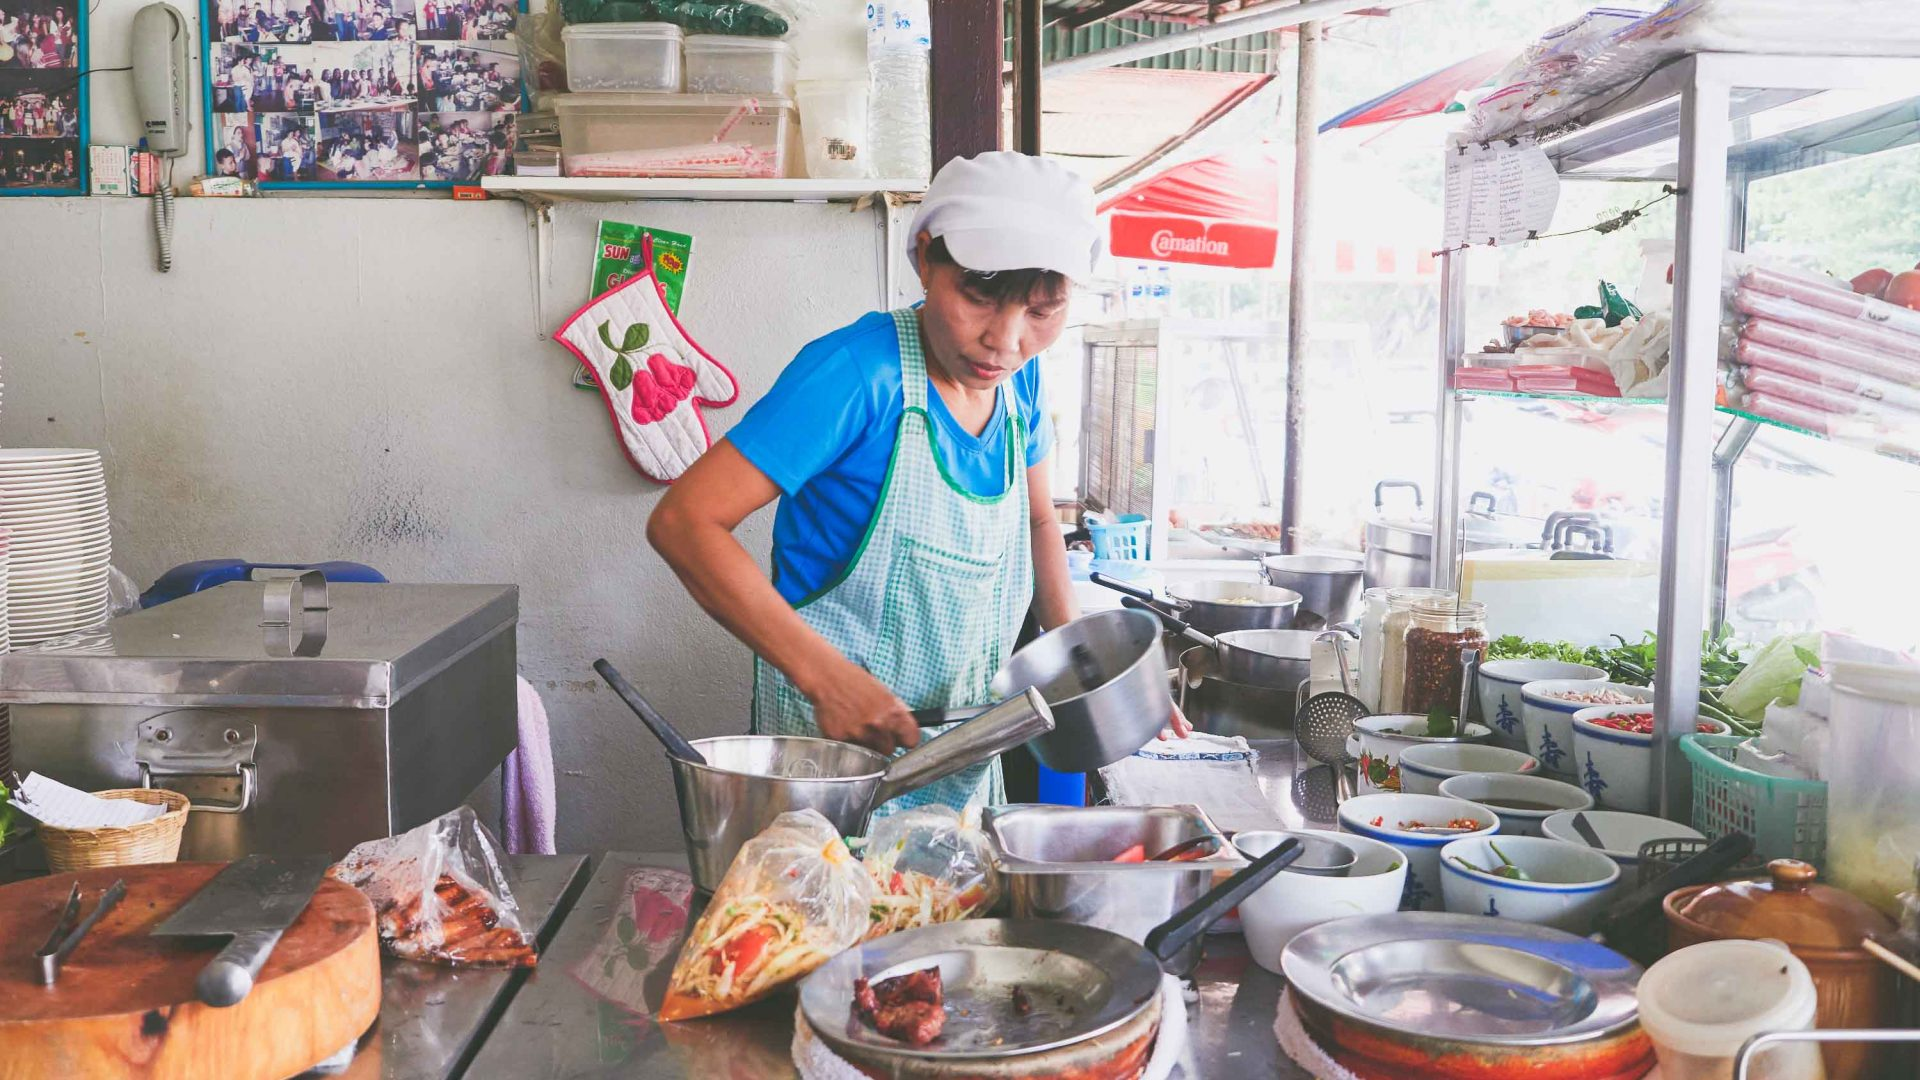 Chiang Mai street food: Malli Chaiya cooks up a storm at her papaya salad stall 'Toy Roszab' on Chiang Mai's Kampangdin Road.